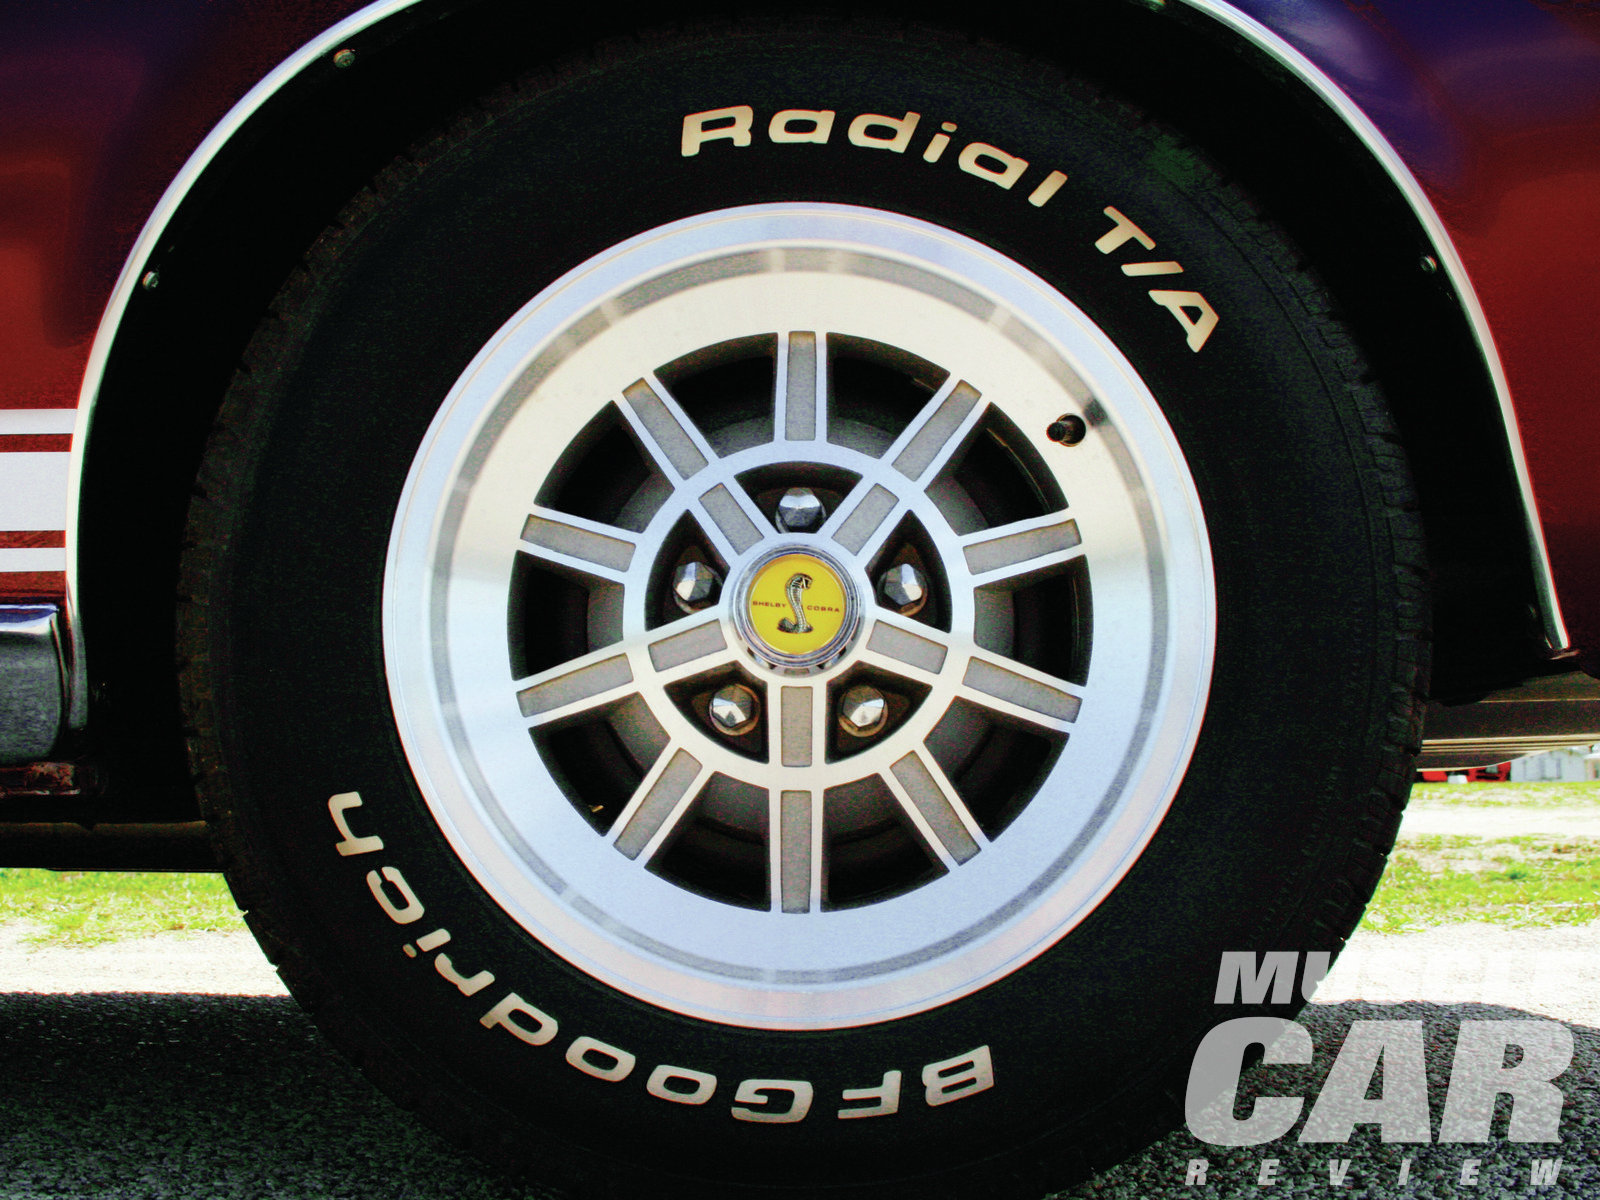 A mag-style wheel cover was standard equipment on '68 Shelby Mustangs, with this 10-spoke aluminum wheel available as an option.